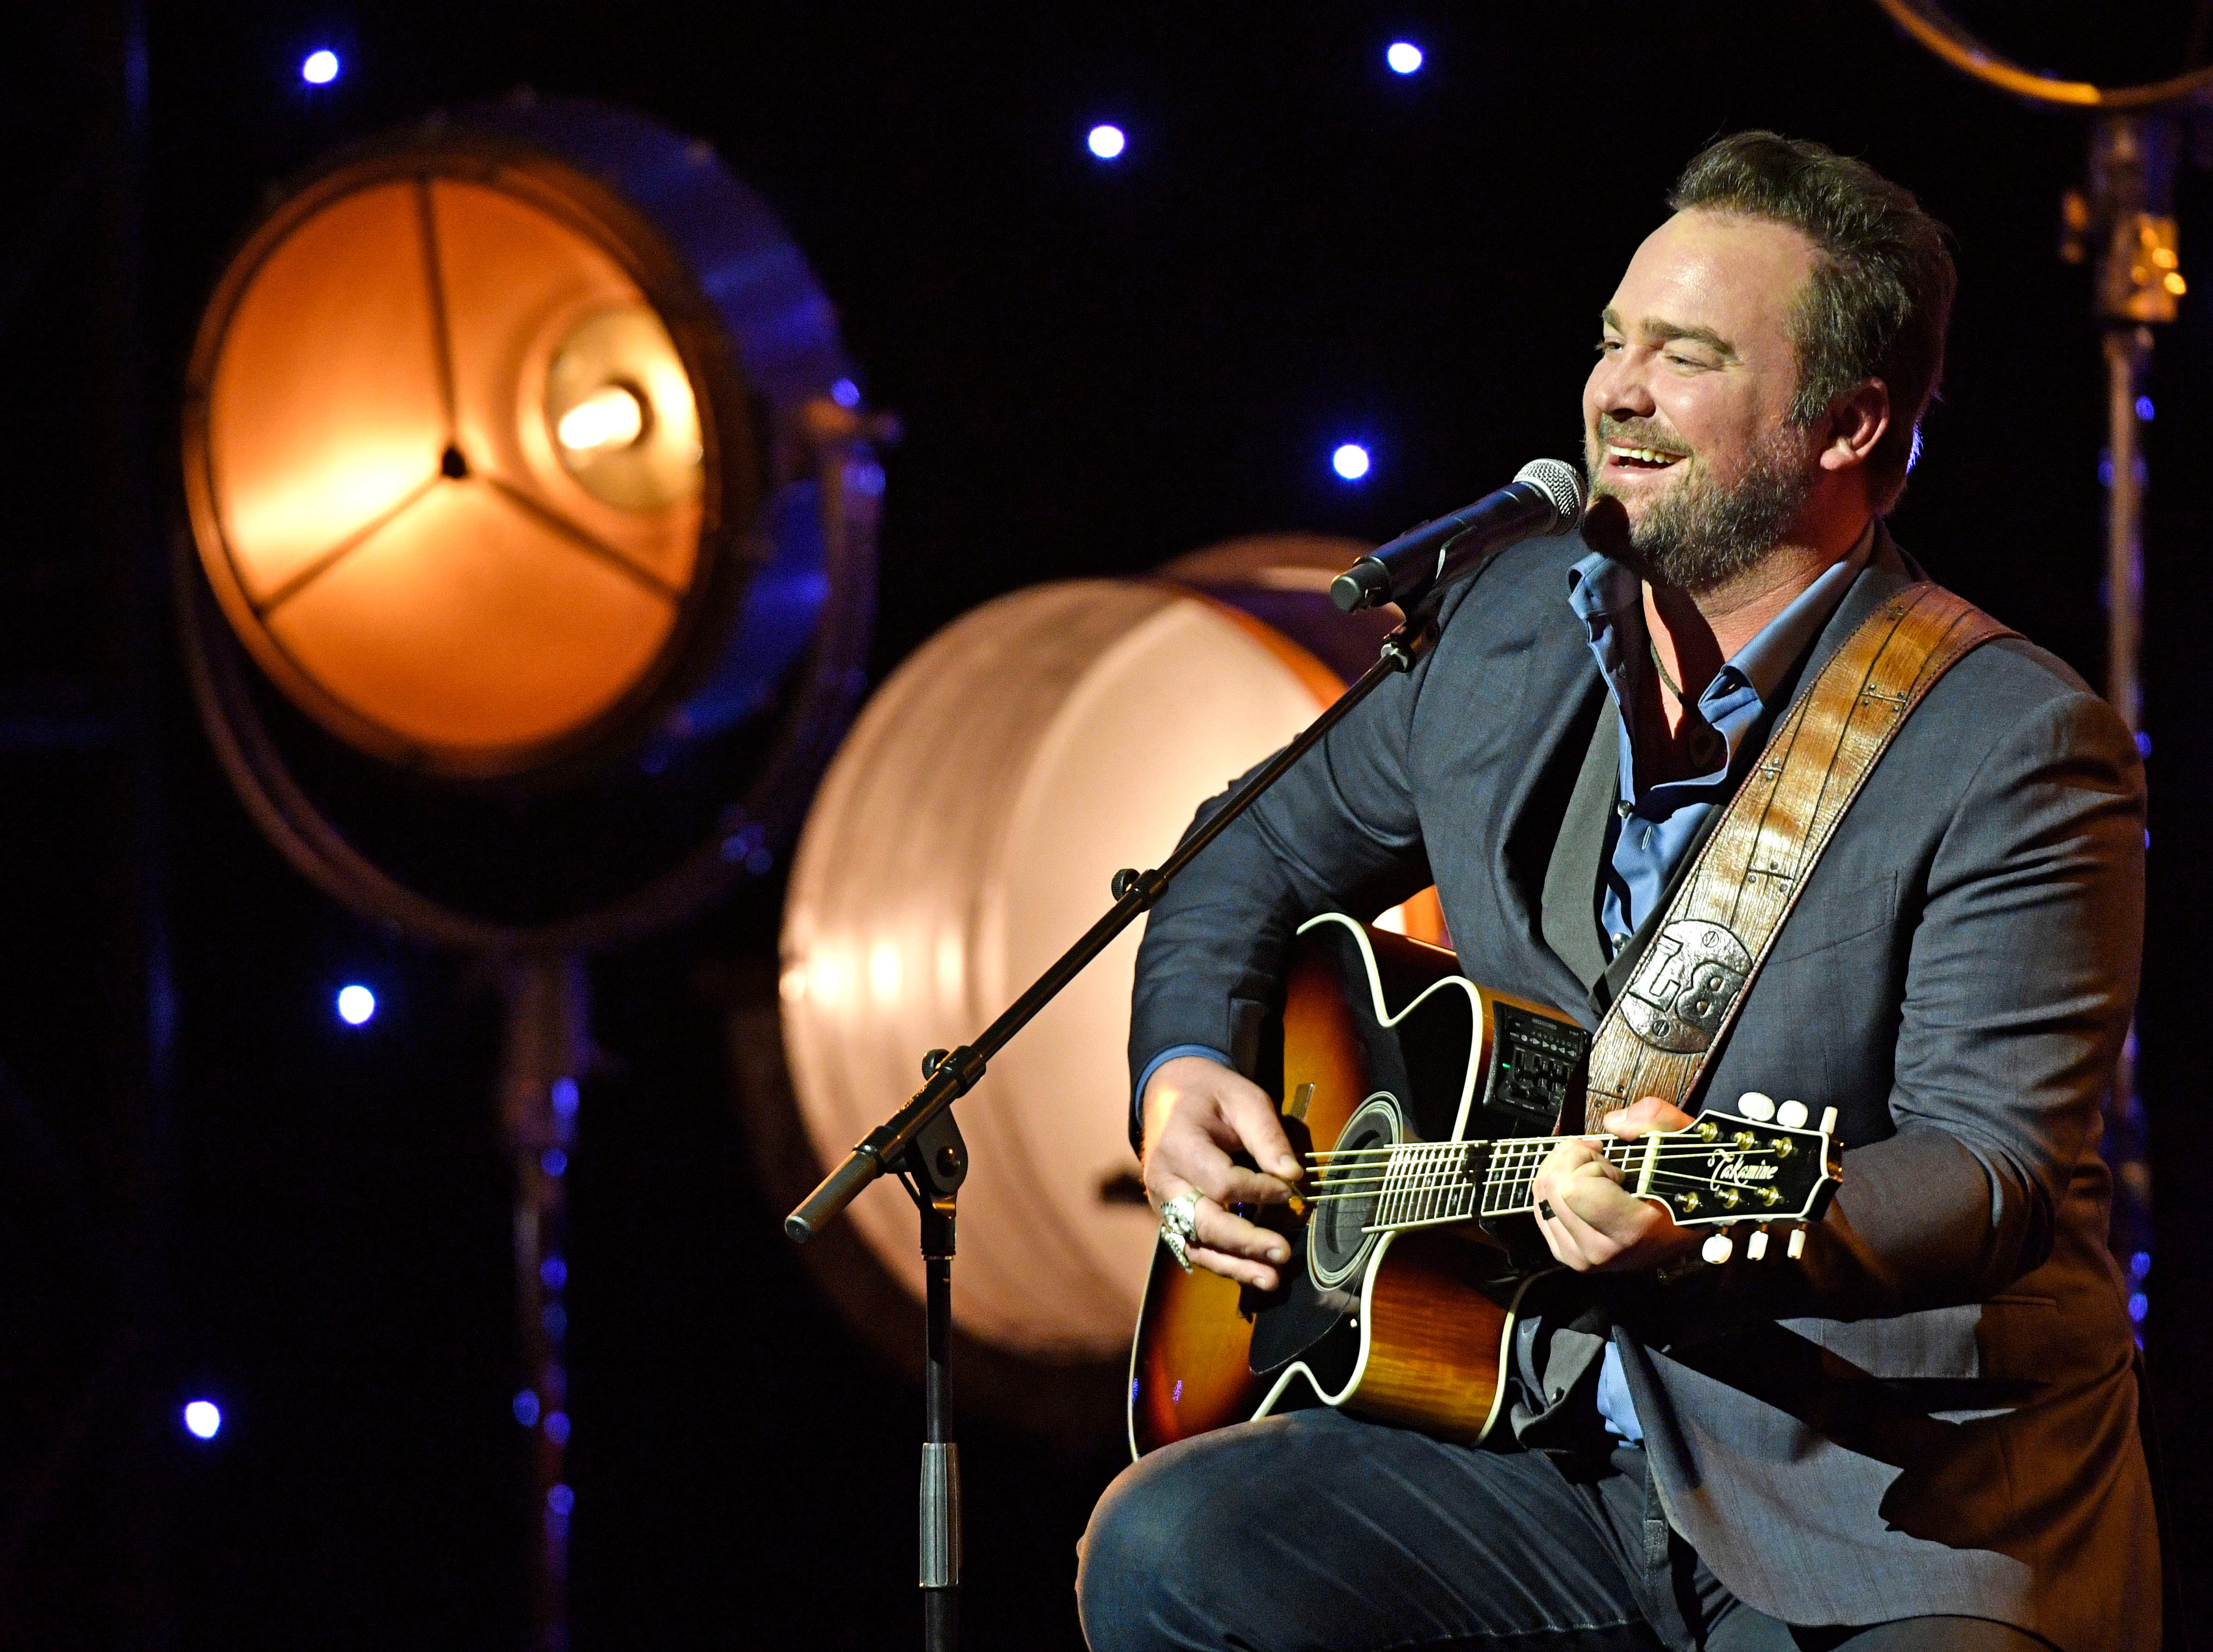 """Lee Brice also performed his 2013 CMA Song of the Year """"I Drive Your Truck"""" in honor of Veteran's Day at the SESAC Nashville Music Awards at the Country Music Hall of Fame and Museum Sunday Nov. 11, 2018, in Nashville, Tenn."""